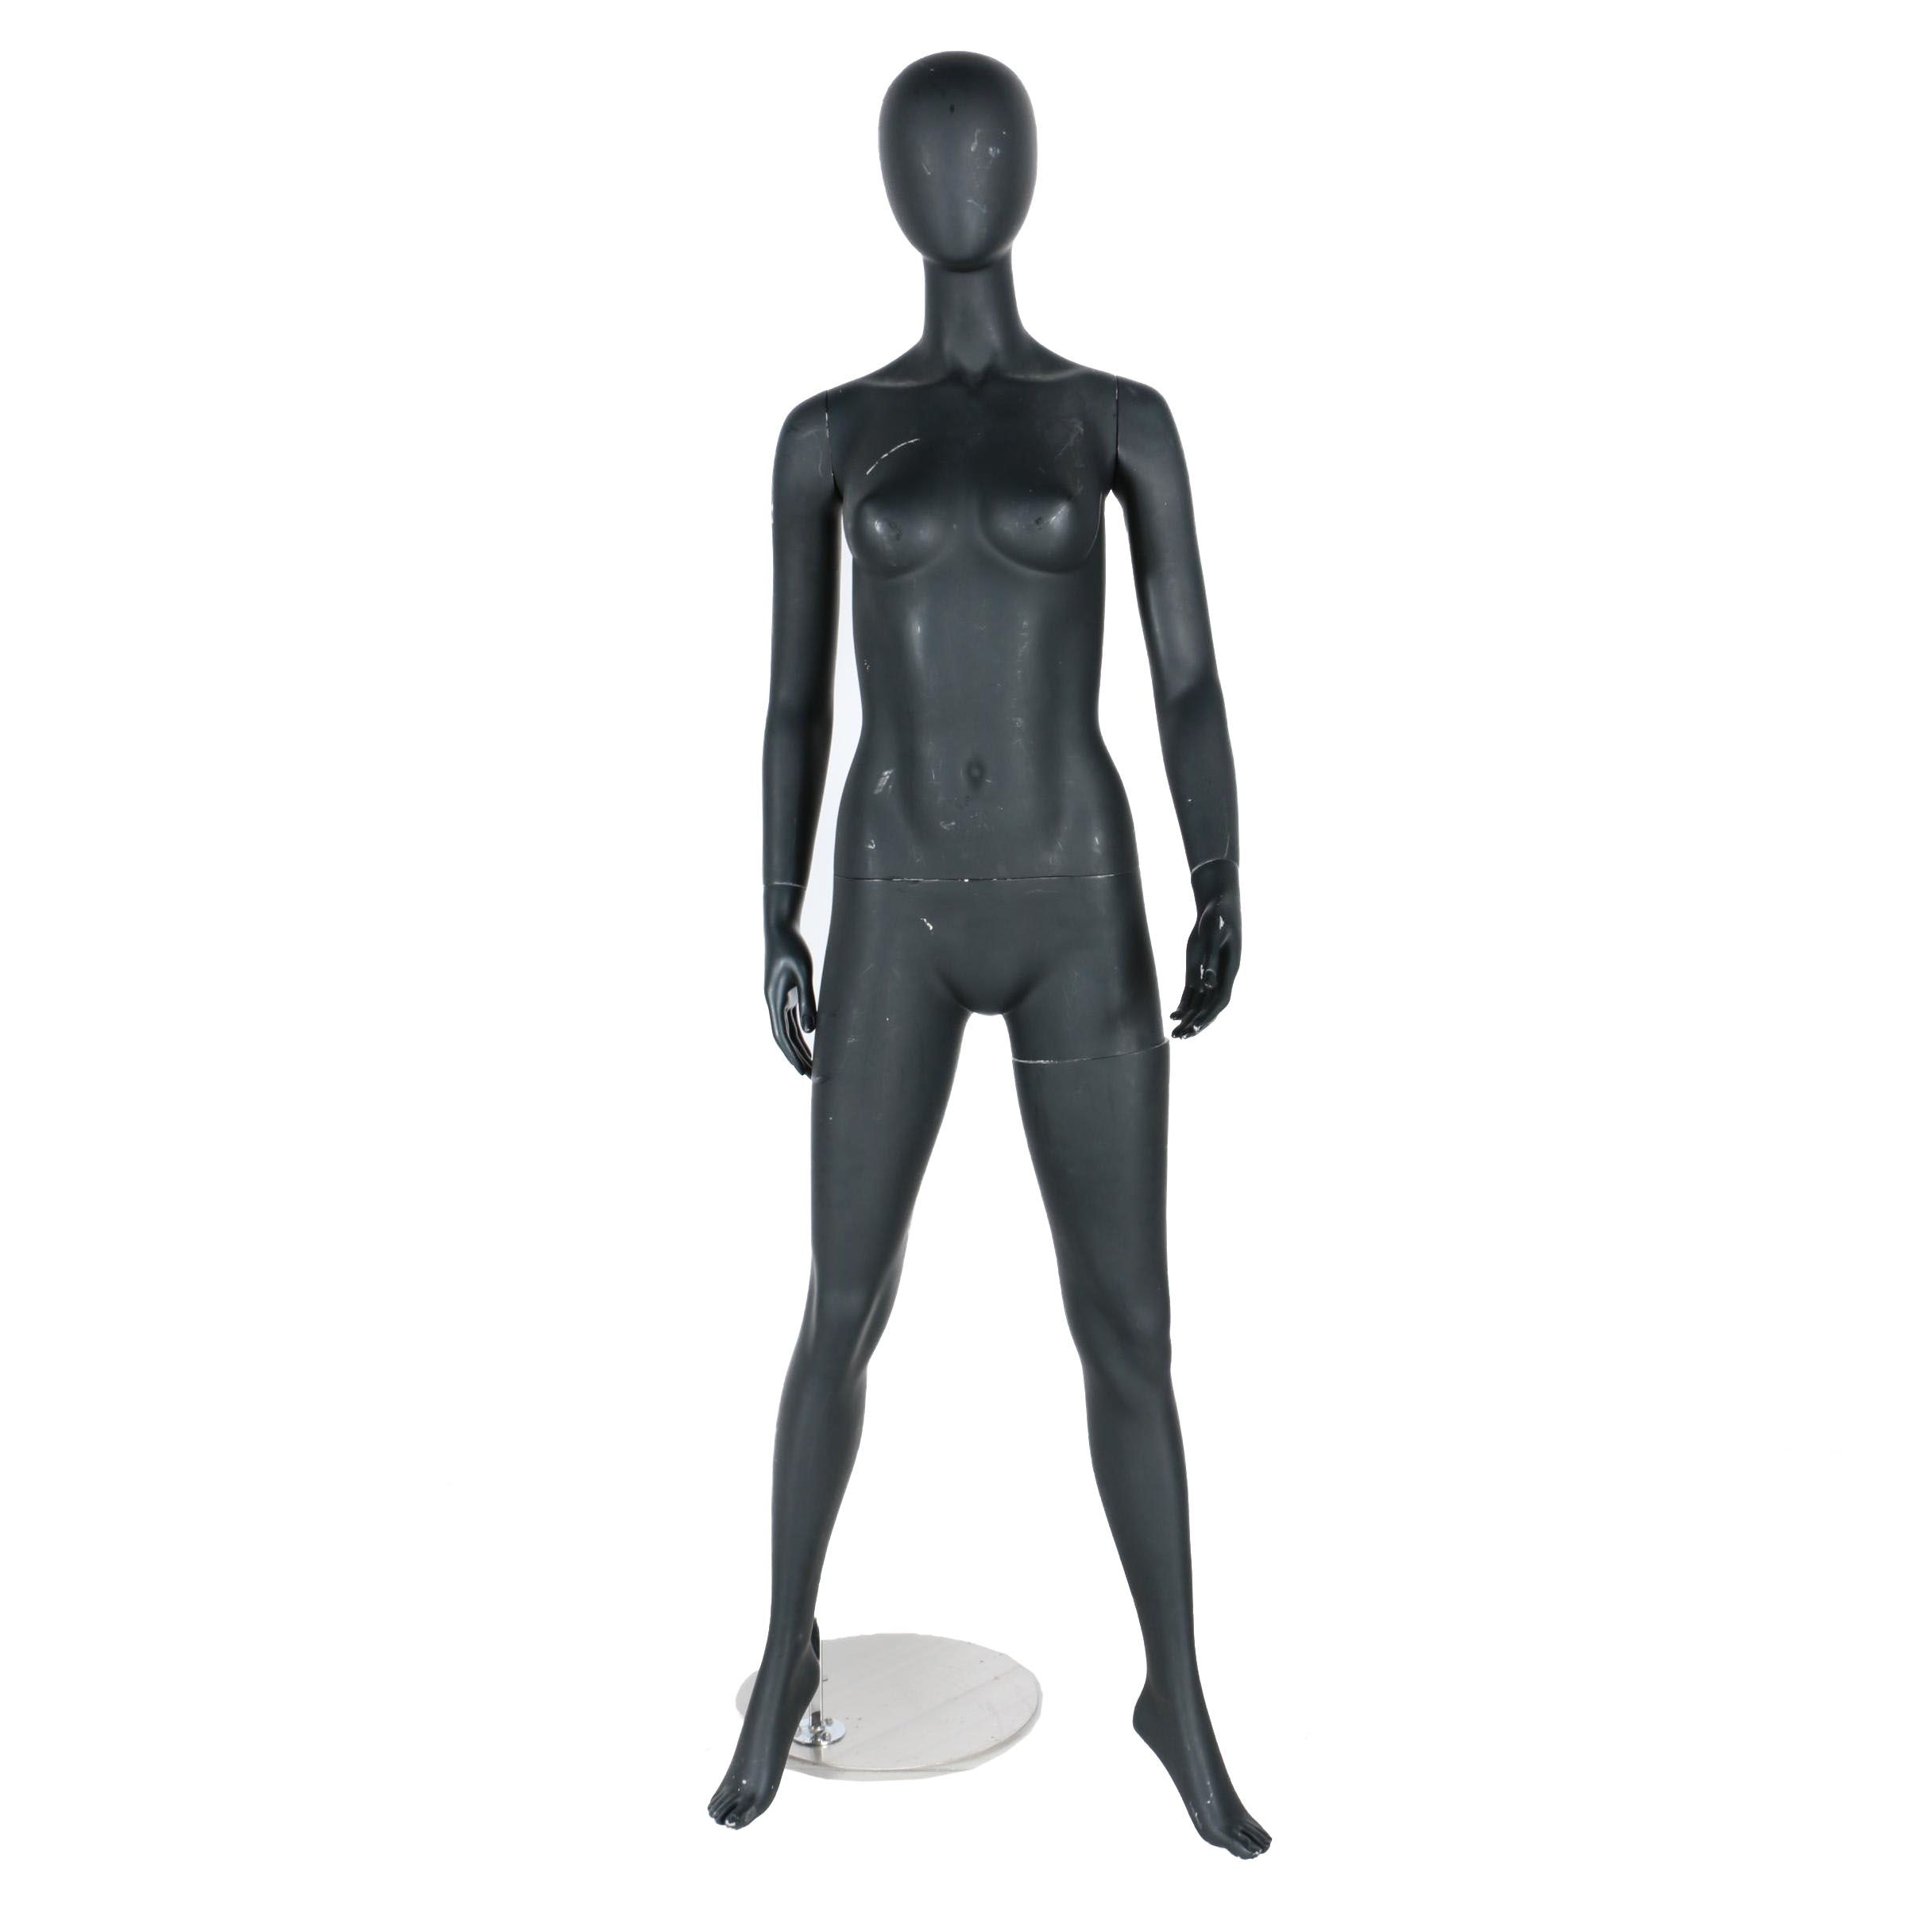 Full Body Female Mannequin With Base